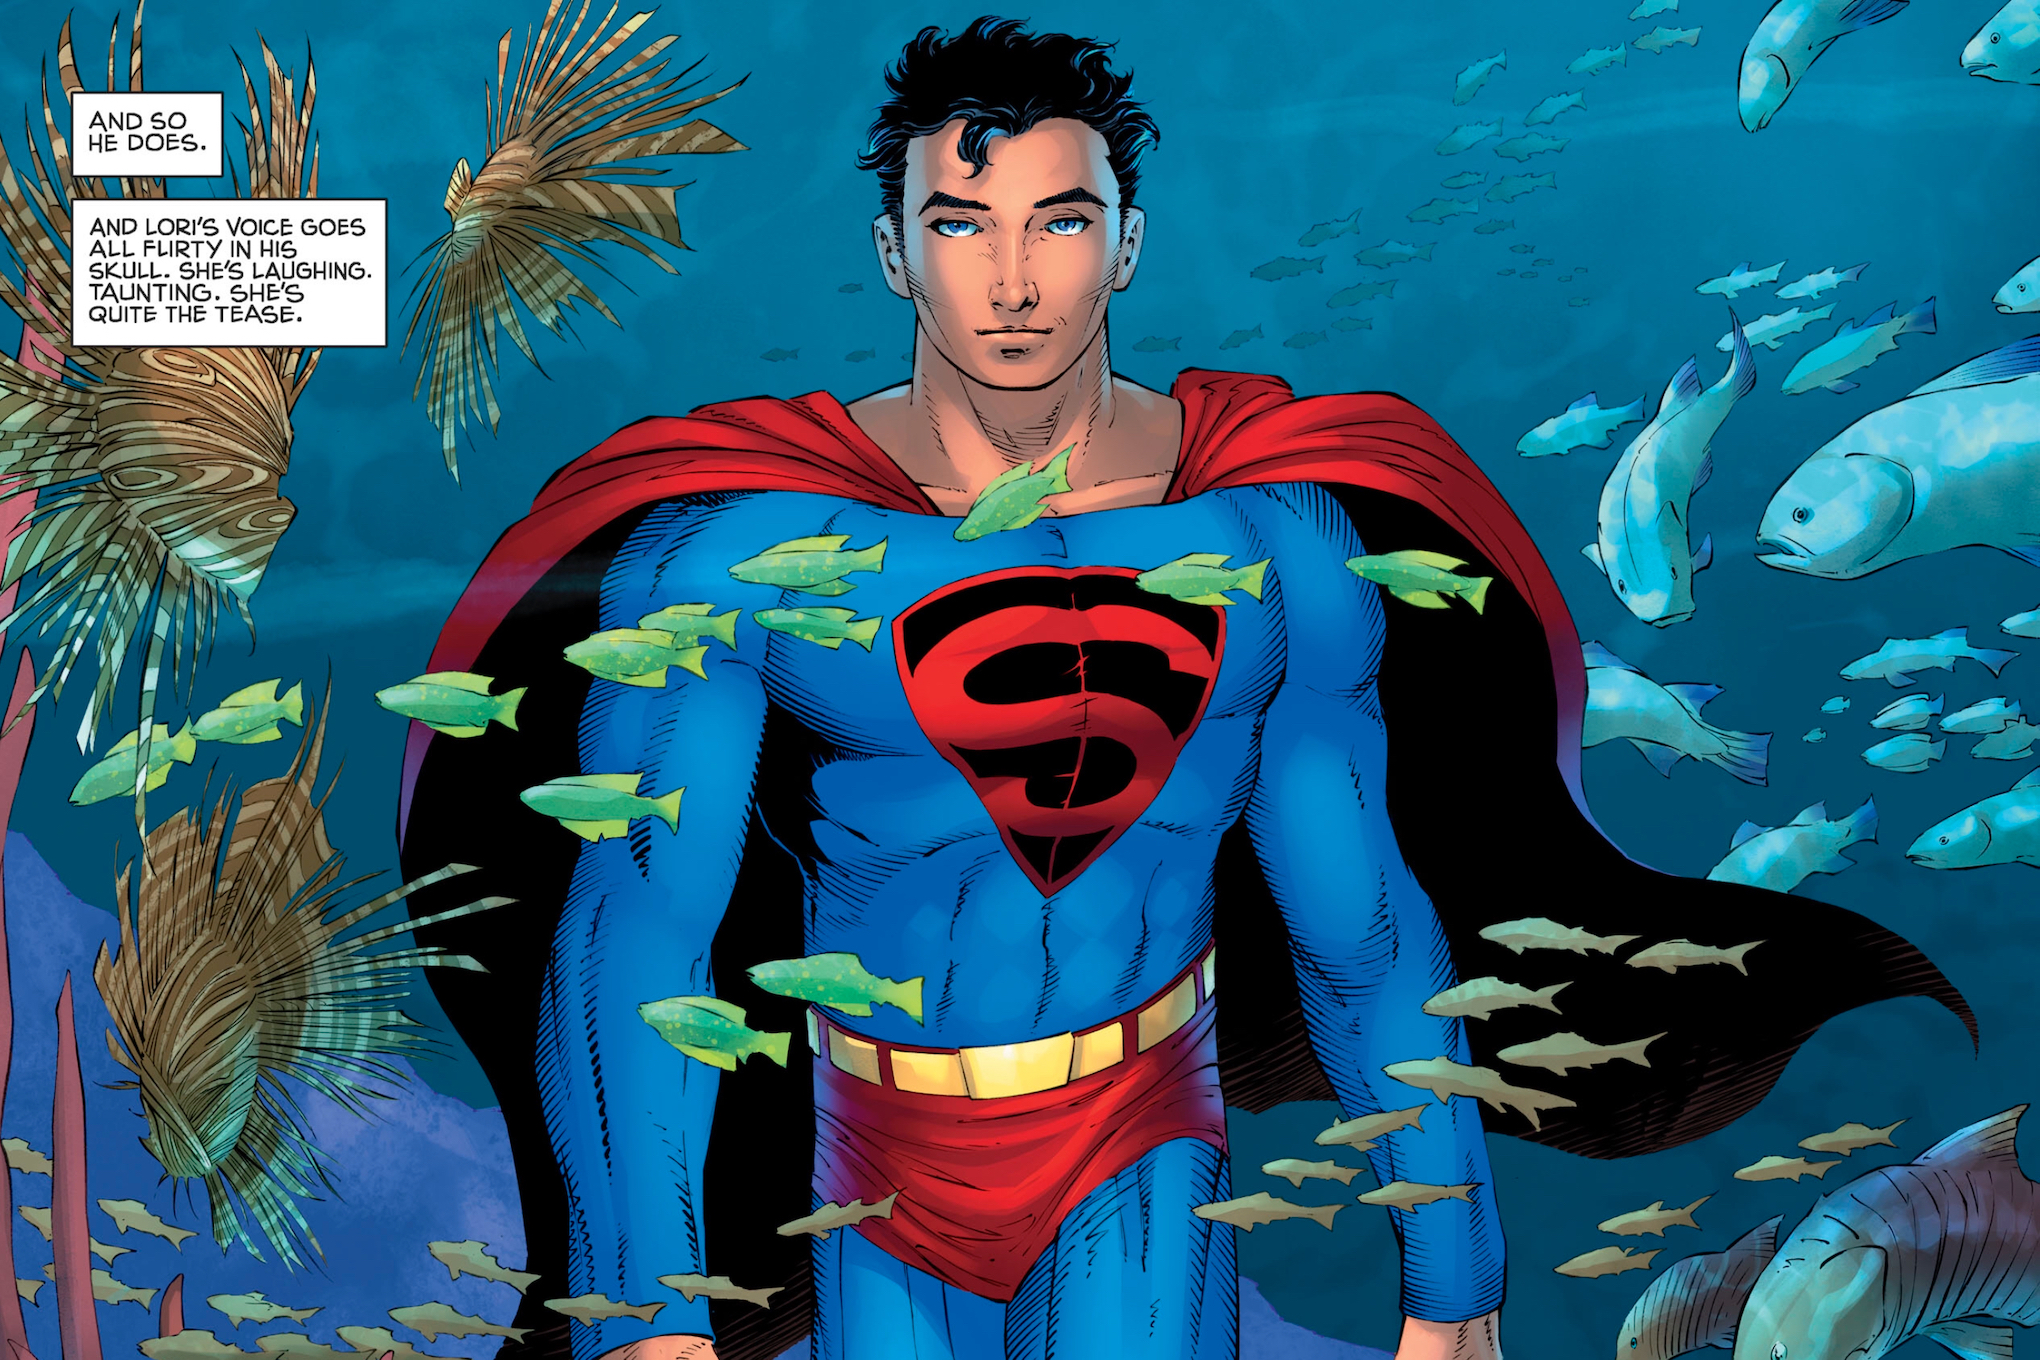 A young Superman strides the the ocean depths, surrounded by exotic fish, in Superman: Year One #2, DC Comics (2019).